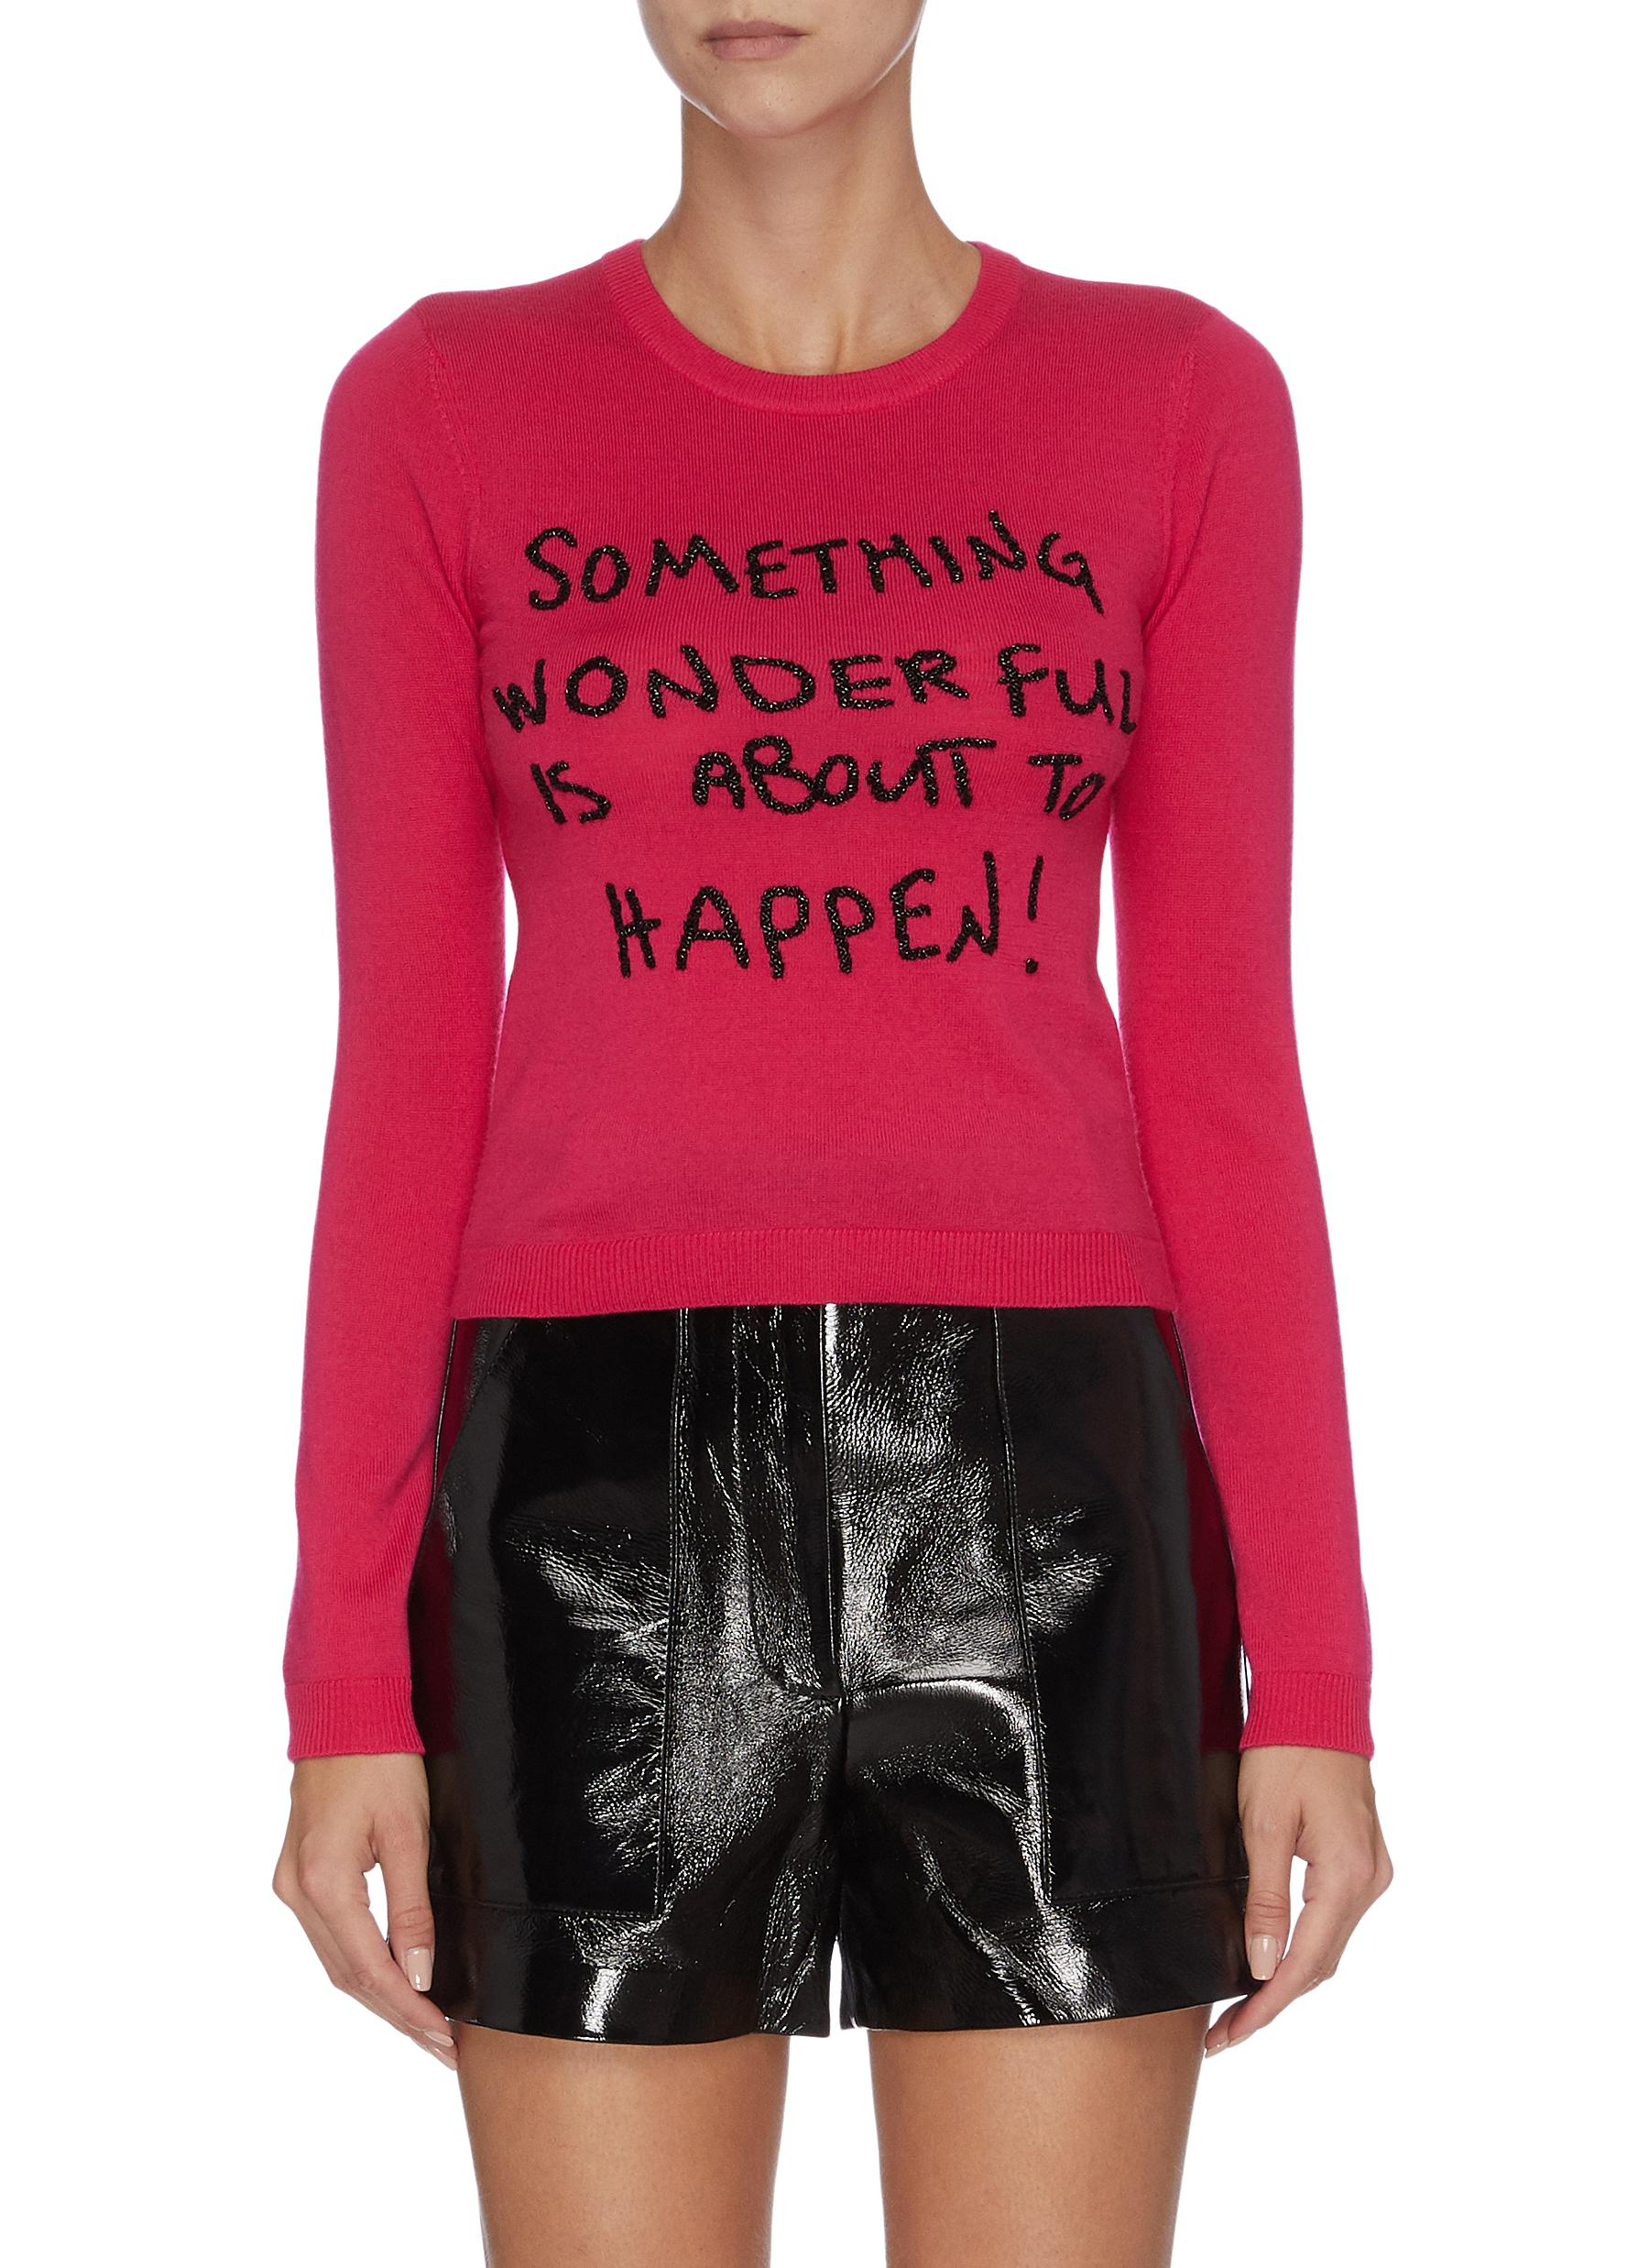 Connie sequinned slogan long sleeve top by Alice + Olivia